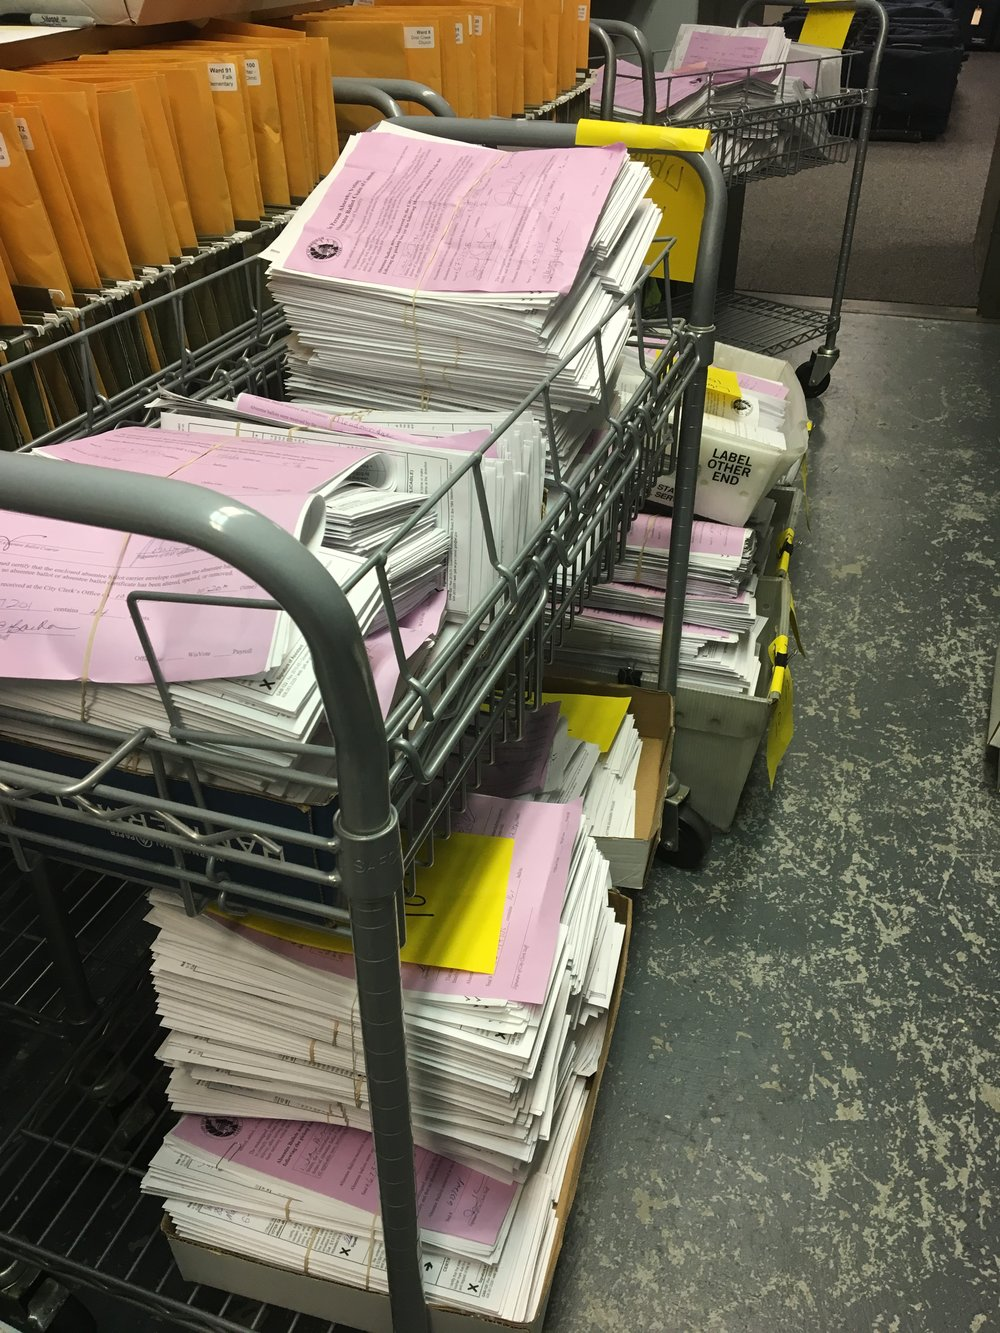 Packets of in-person absentee ballots (with their lilac chain of custody declarations attached) in the vault at the City Clerk's office. (Photo courtesy of Maribeth Witzel-Behl.)